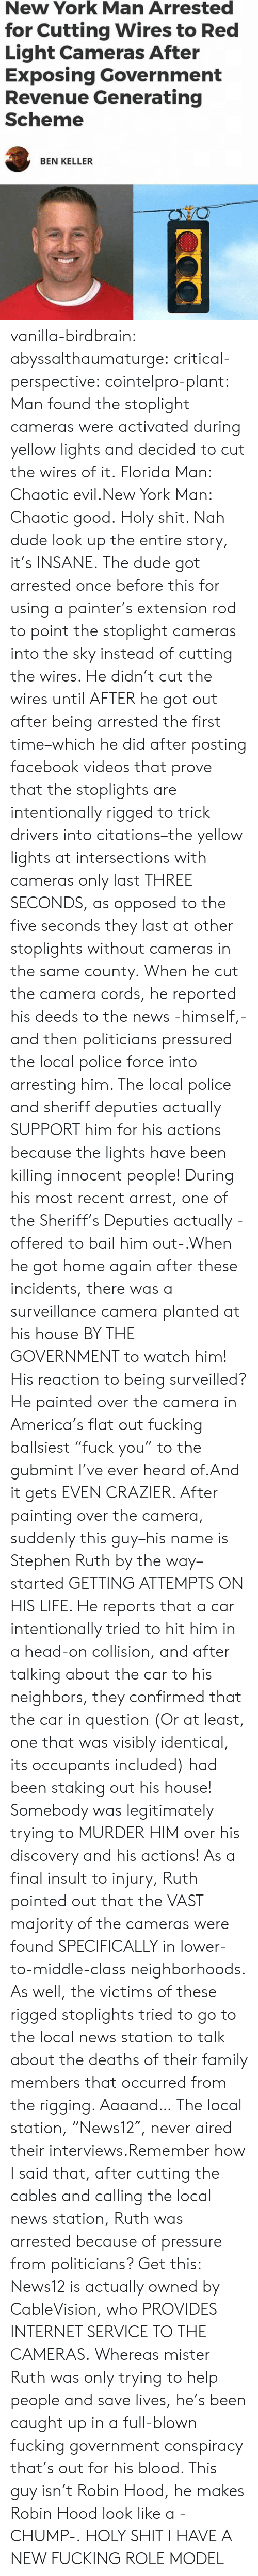 """pressured: New York Man Arrested  for Cutting Wires to Red  Light Cameras After  Exposing Government  Revenue Generating  Scheme  BEN KELLER vanilla-birdbrain:  abyssalthaumaturge:  critical-perspective:  cointelpro-plant: Man found the stoplight cameras were activated during yellow lights and decided to cut the wires of it. Florida Man: Chaotic evil.New York Man: Chaotic good.  Holy shit. Nah dude look up the entire story, it's INSANE. The dude got arrested once before this for using a painter's extension rod to point the stoplight cameras into the sky instead of cutting the wires. He didn't cut the wires until AFTER he got out after being arrested the first time–which he did after posting facebook videos that prove that the stoplights are intentionally rigged to trick drivers into citations–the yellow lights at intersections with cameras only last THREE SECONDS, as opposed to the five seconds they last at other stoplights without cameras in the same county. When he cut the camera cords, he reported his deeds to the news -himself,- and then politicians pressured the local police force into arresting him. The local police and sheriff deputies actually SUPPORT him for his actions because the lights have been killing innocent people! During his most recent arrest, one of the Sheriff's Deputies actually -offered to bail him out-.When he got home again after these incidents, there was a surveillance camera planted at his house BY THE GOVERNMENT to watch him! His reaction to being surveilled? He painted over the camera in America's flat out fucking ballsiest""""fuck you"""" to the gubmint I've ever heard of.And it gets EVEN CRAZIER. After painting over the camera, suddenly this guy–his name is Stephen Ruth by the way–started GETTING ATTEMPTS ON HIS LIFE. He reports that a car intentionally tried to hit him in a head-on collision, and after talking about the car to his neighbors, they confirmed that the car in question (Or at least, one that was visibly identical, its occupants"""